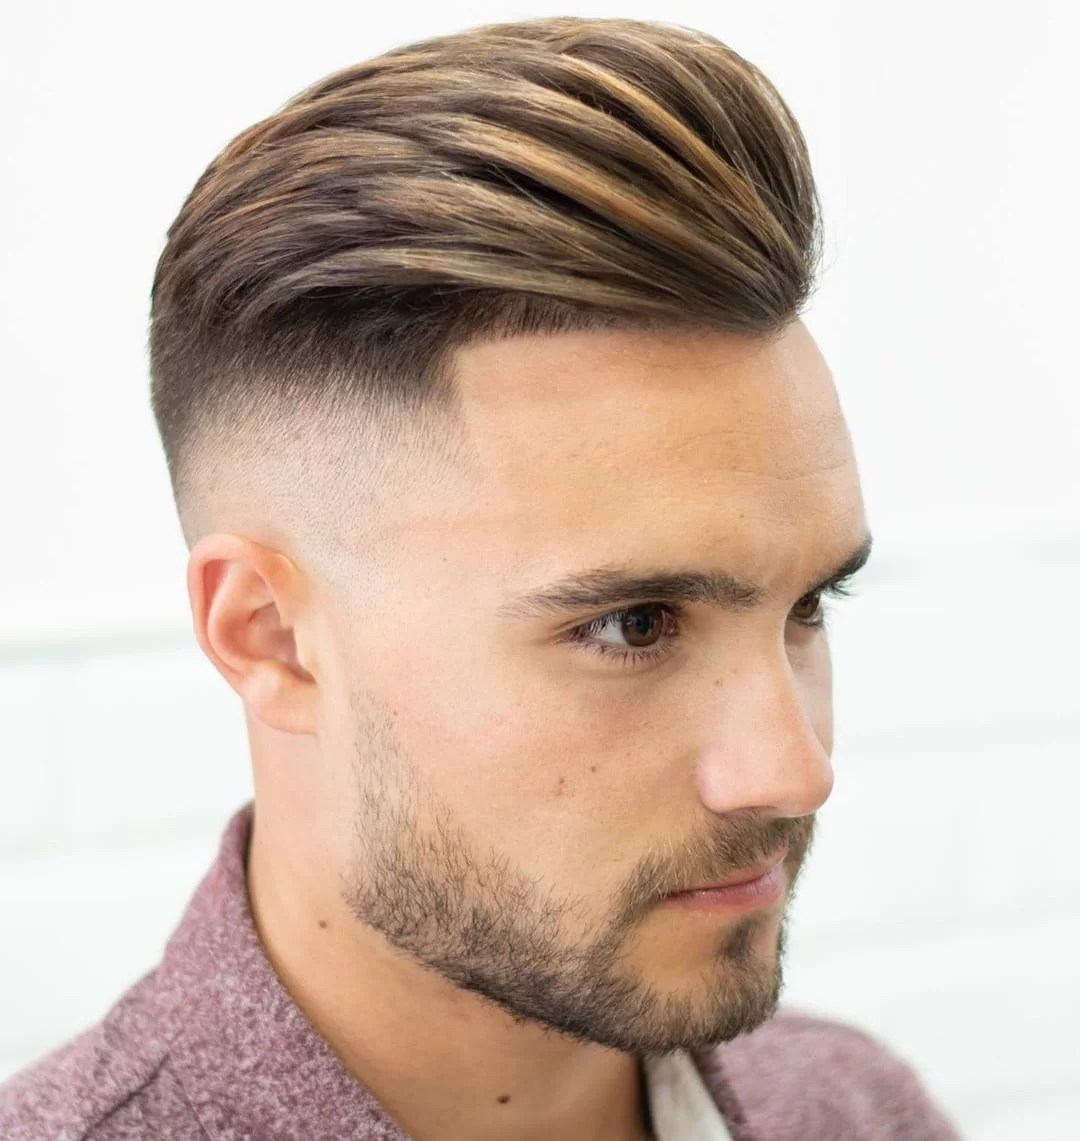 Learn about different hairstyles and g. 20 Classic Undercut Hairstyles For Men Stylesrant